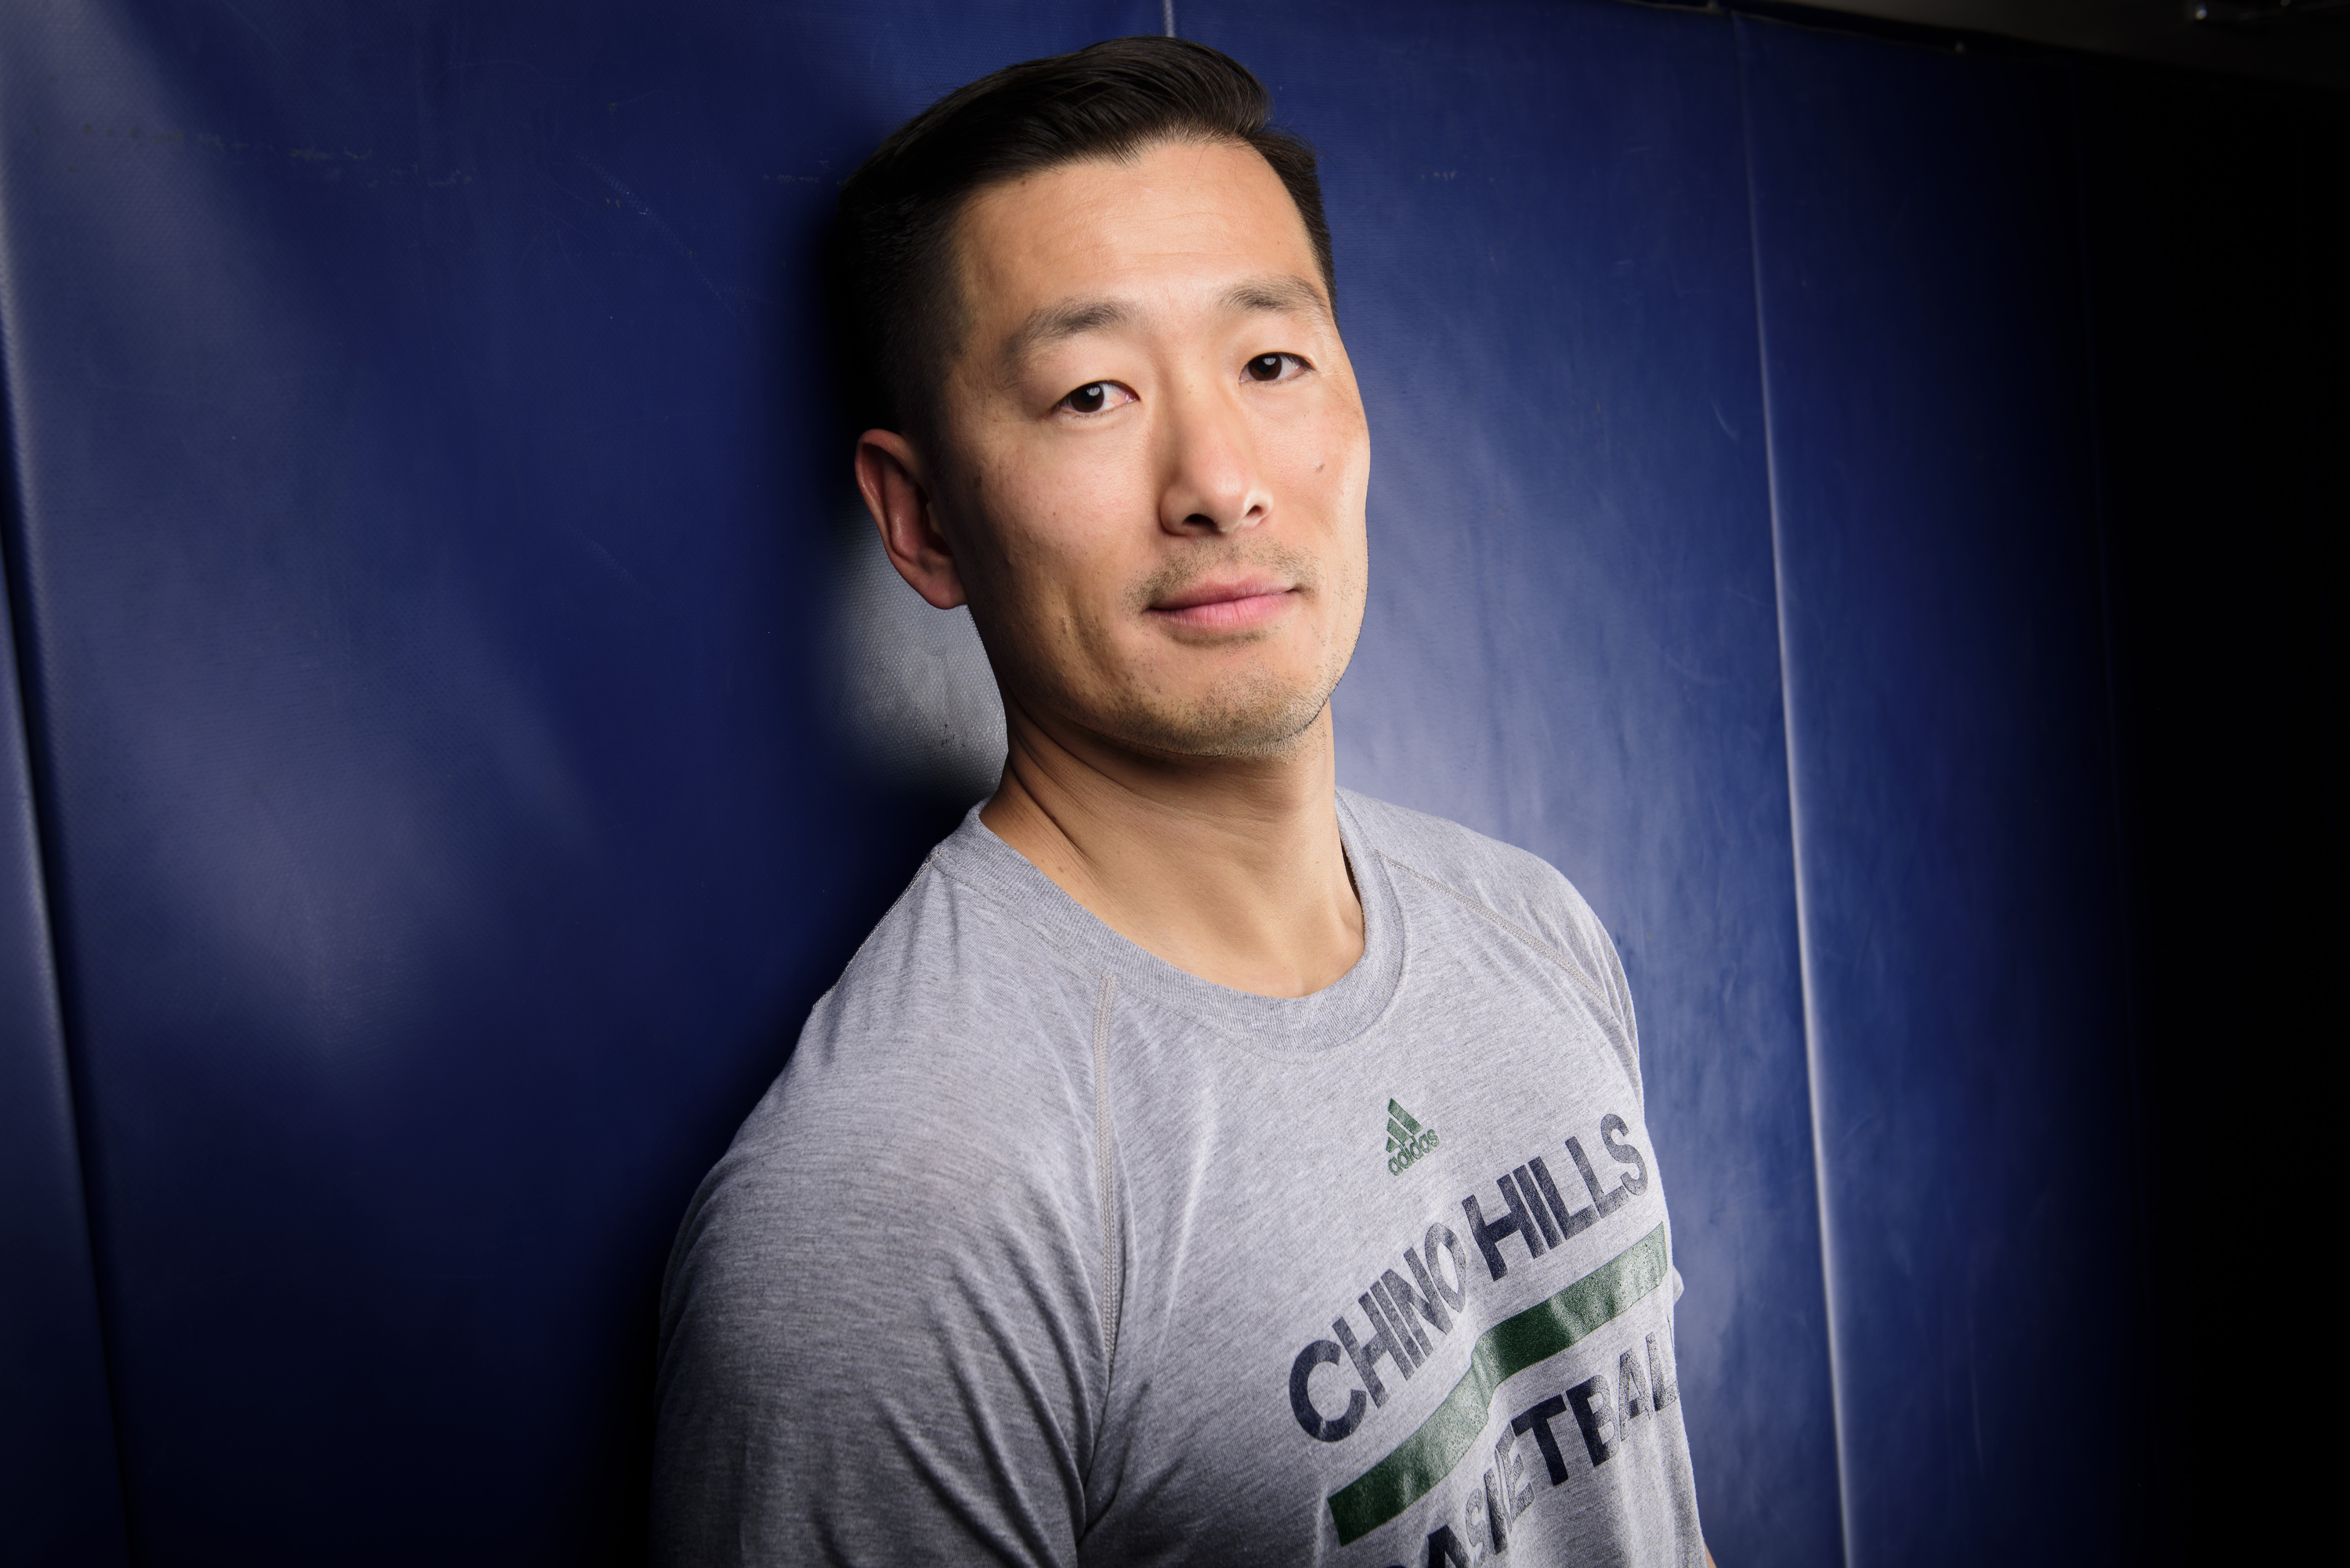 3/23/16 15:37:42 -- Chino Hills, CA, U.S.A -- Steve Baik of Chino Hills, CA is one of our ALL USA TODAY basketball coaches of the year candidates. -- Photo by Kelvin Kuo-USA TODAY Sports Images, Gannett ORG XMIT: US 134654 Steve Baik 3/22/2016 [Via MerlinFTP Drop]